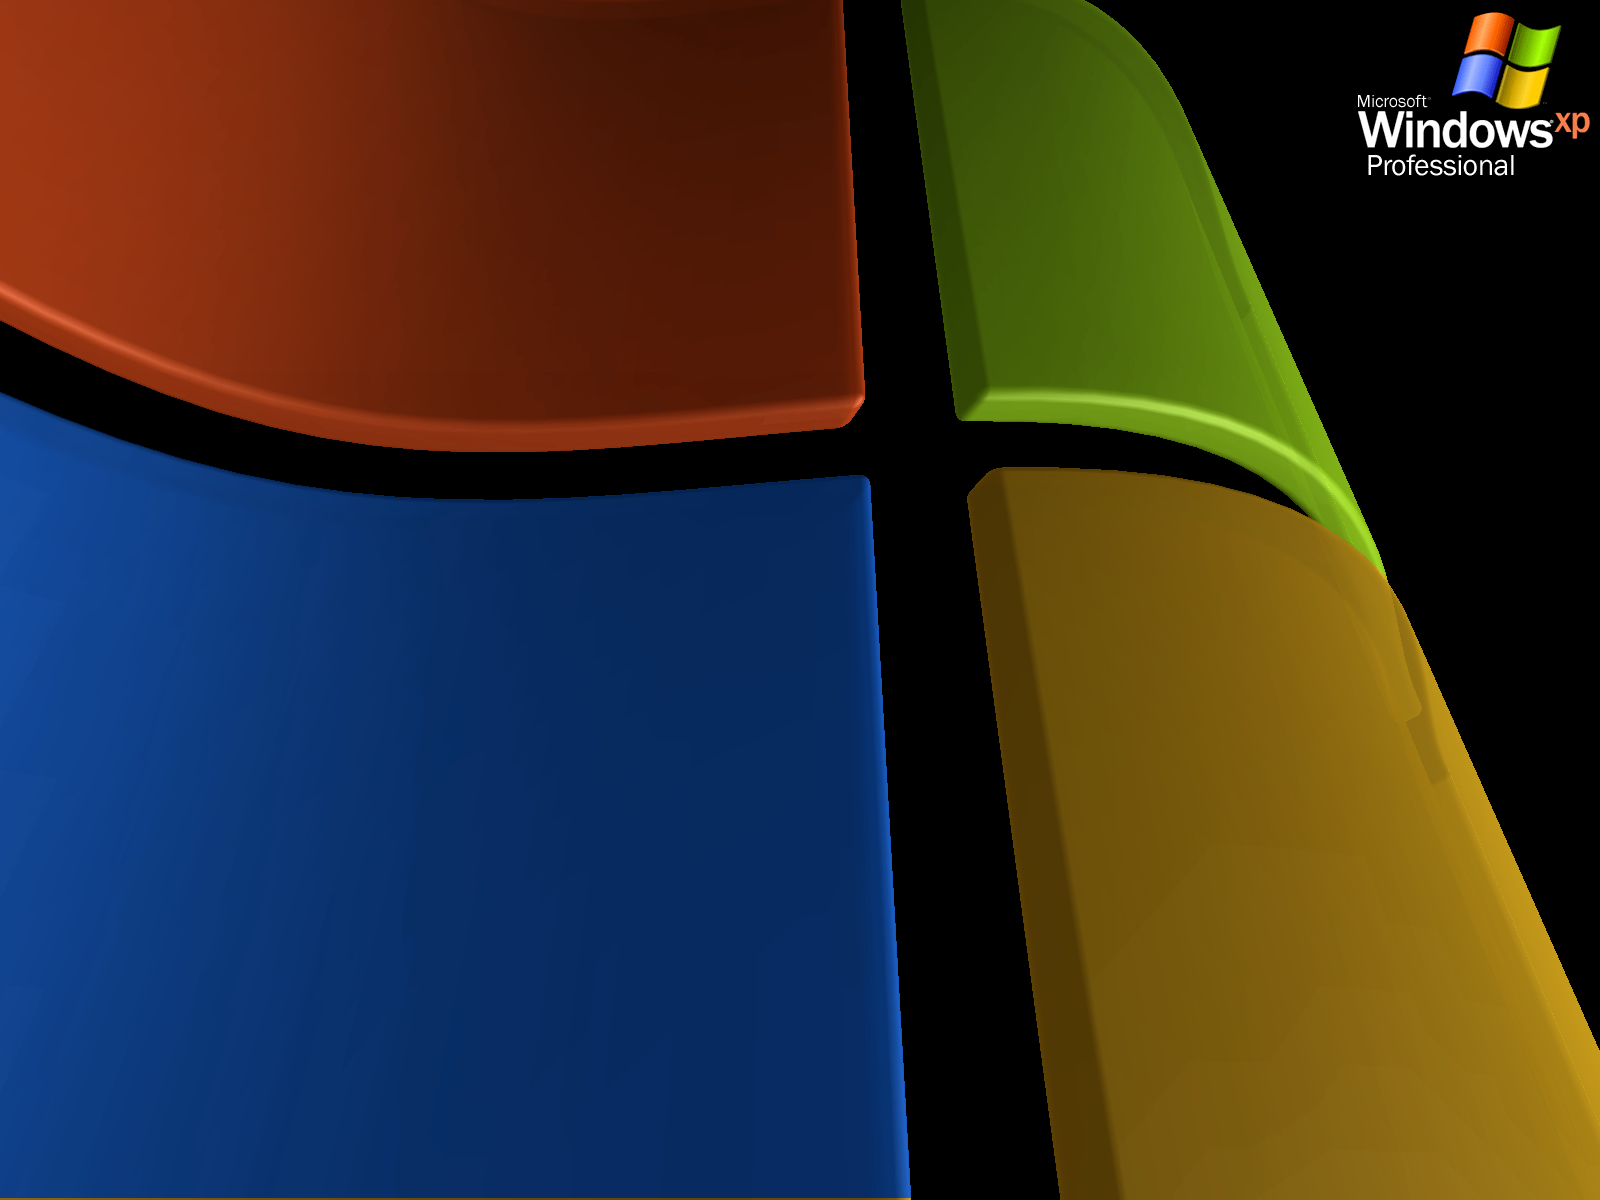 Cool Windows XP Wallpapers In HD For Free Download 1600x1200